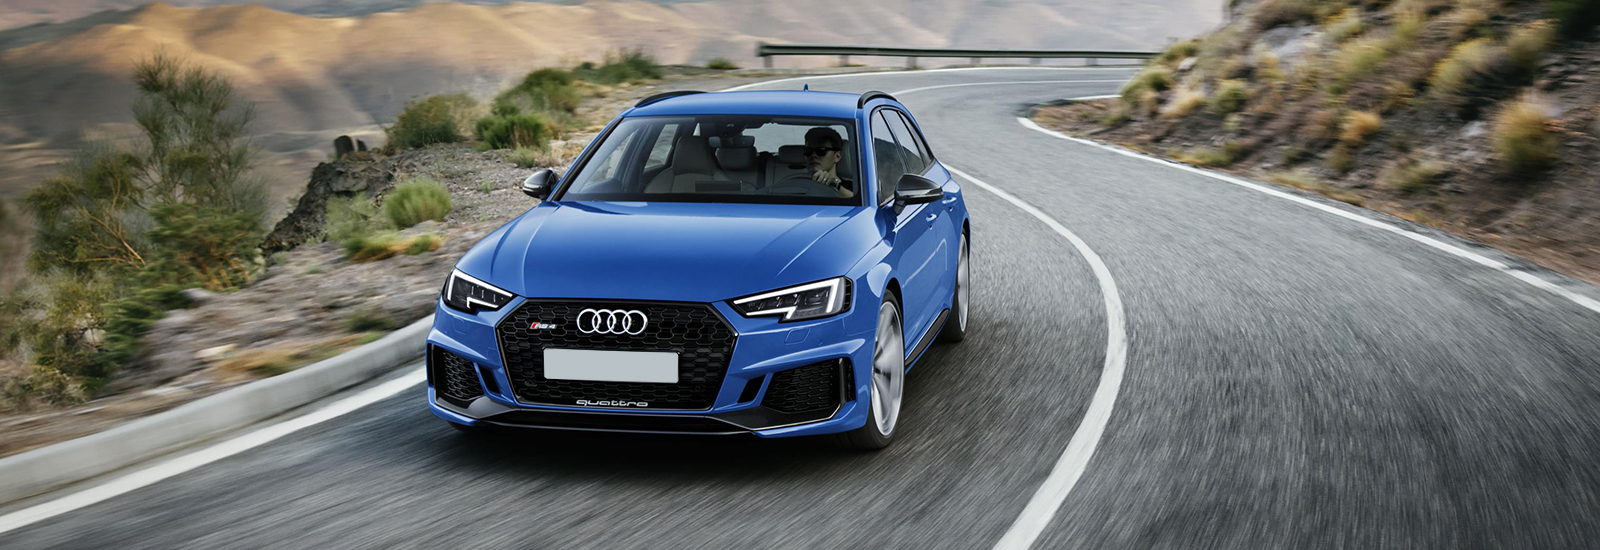 2018 audi rs4 avant. contemporary rs4 styling intended 2018 audi rs4 avant